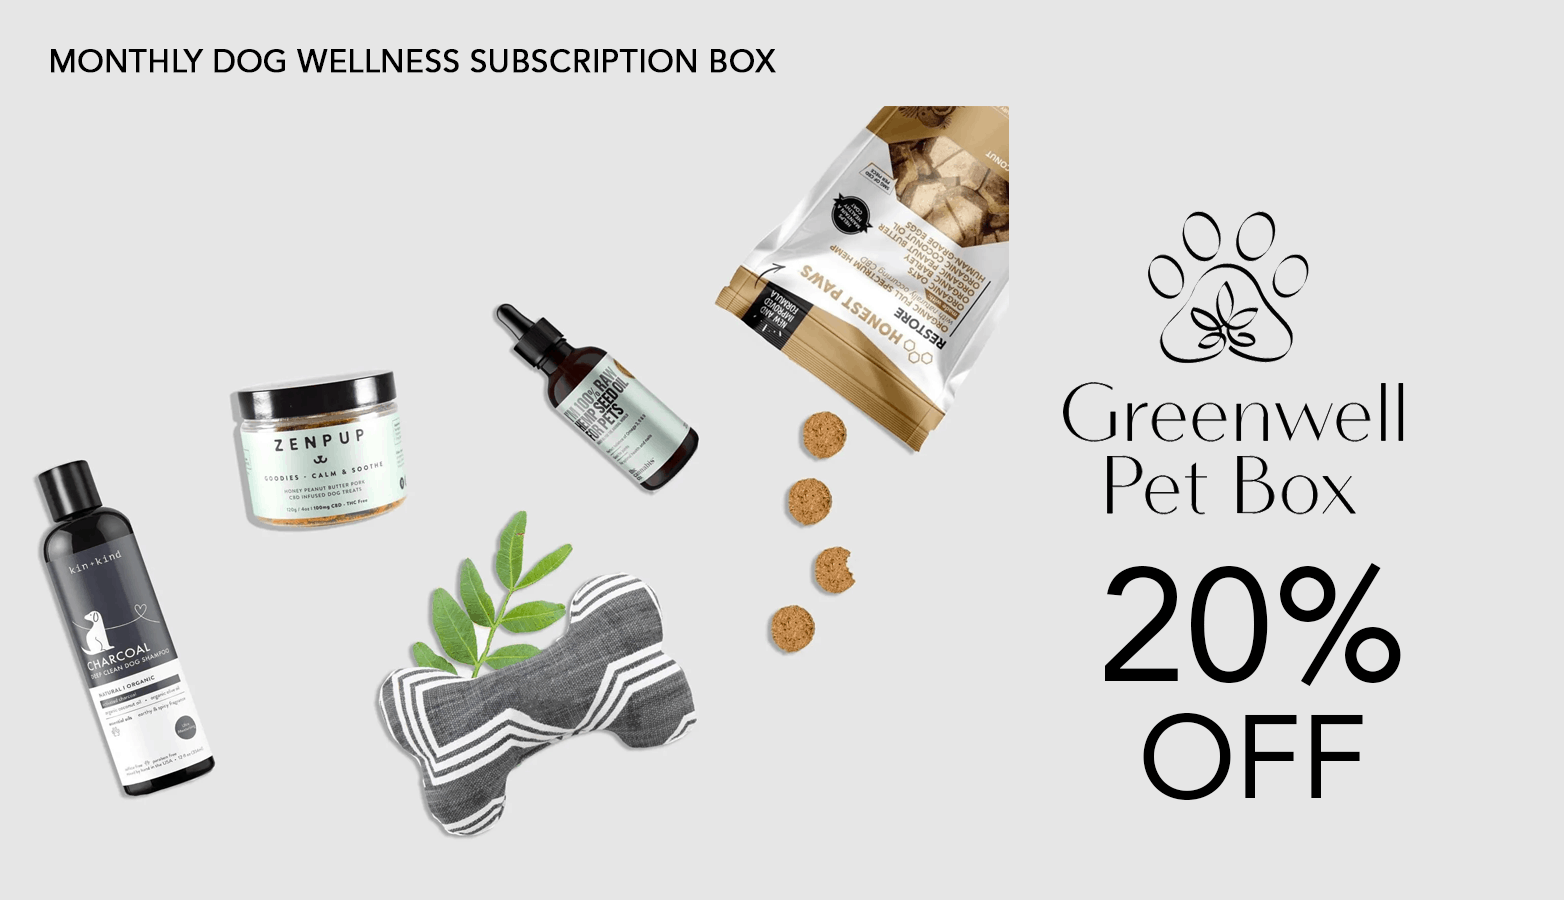 Get Greenwell Pet Box coupons and save.